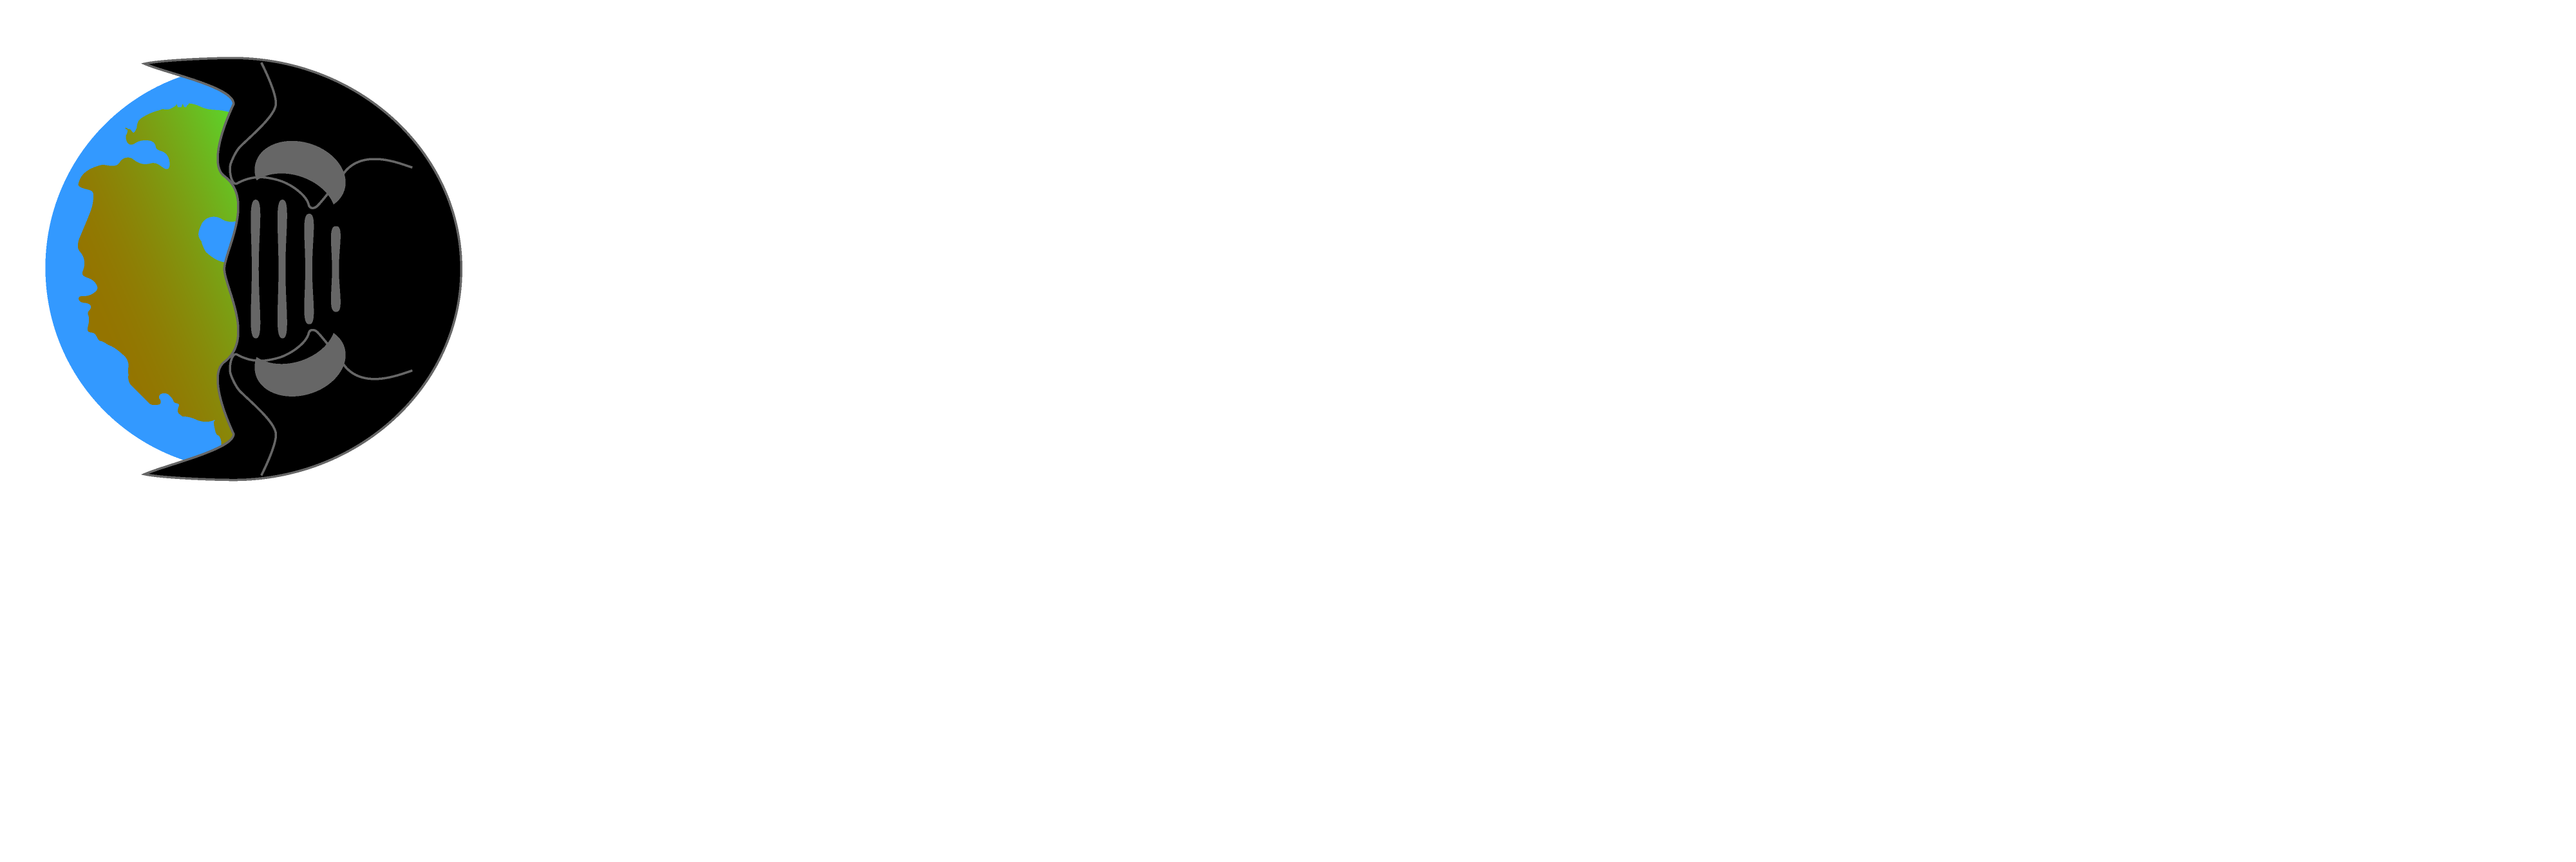 Digital Atlas of Ancient Life logo